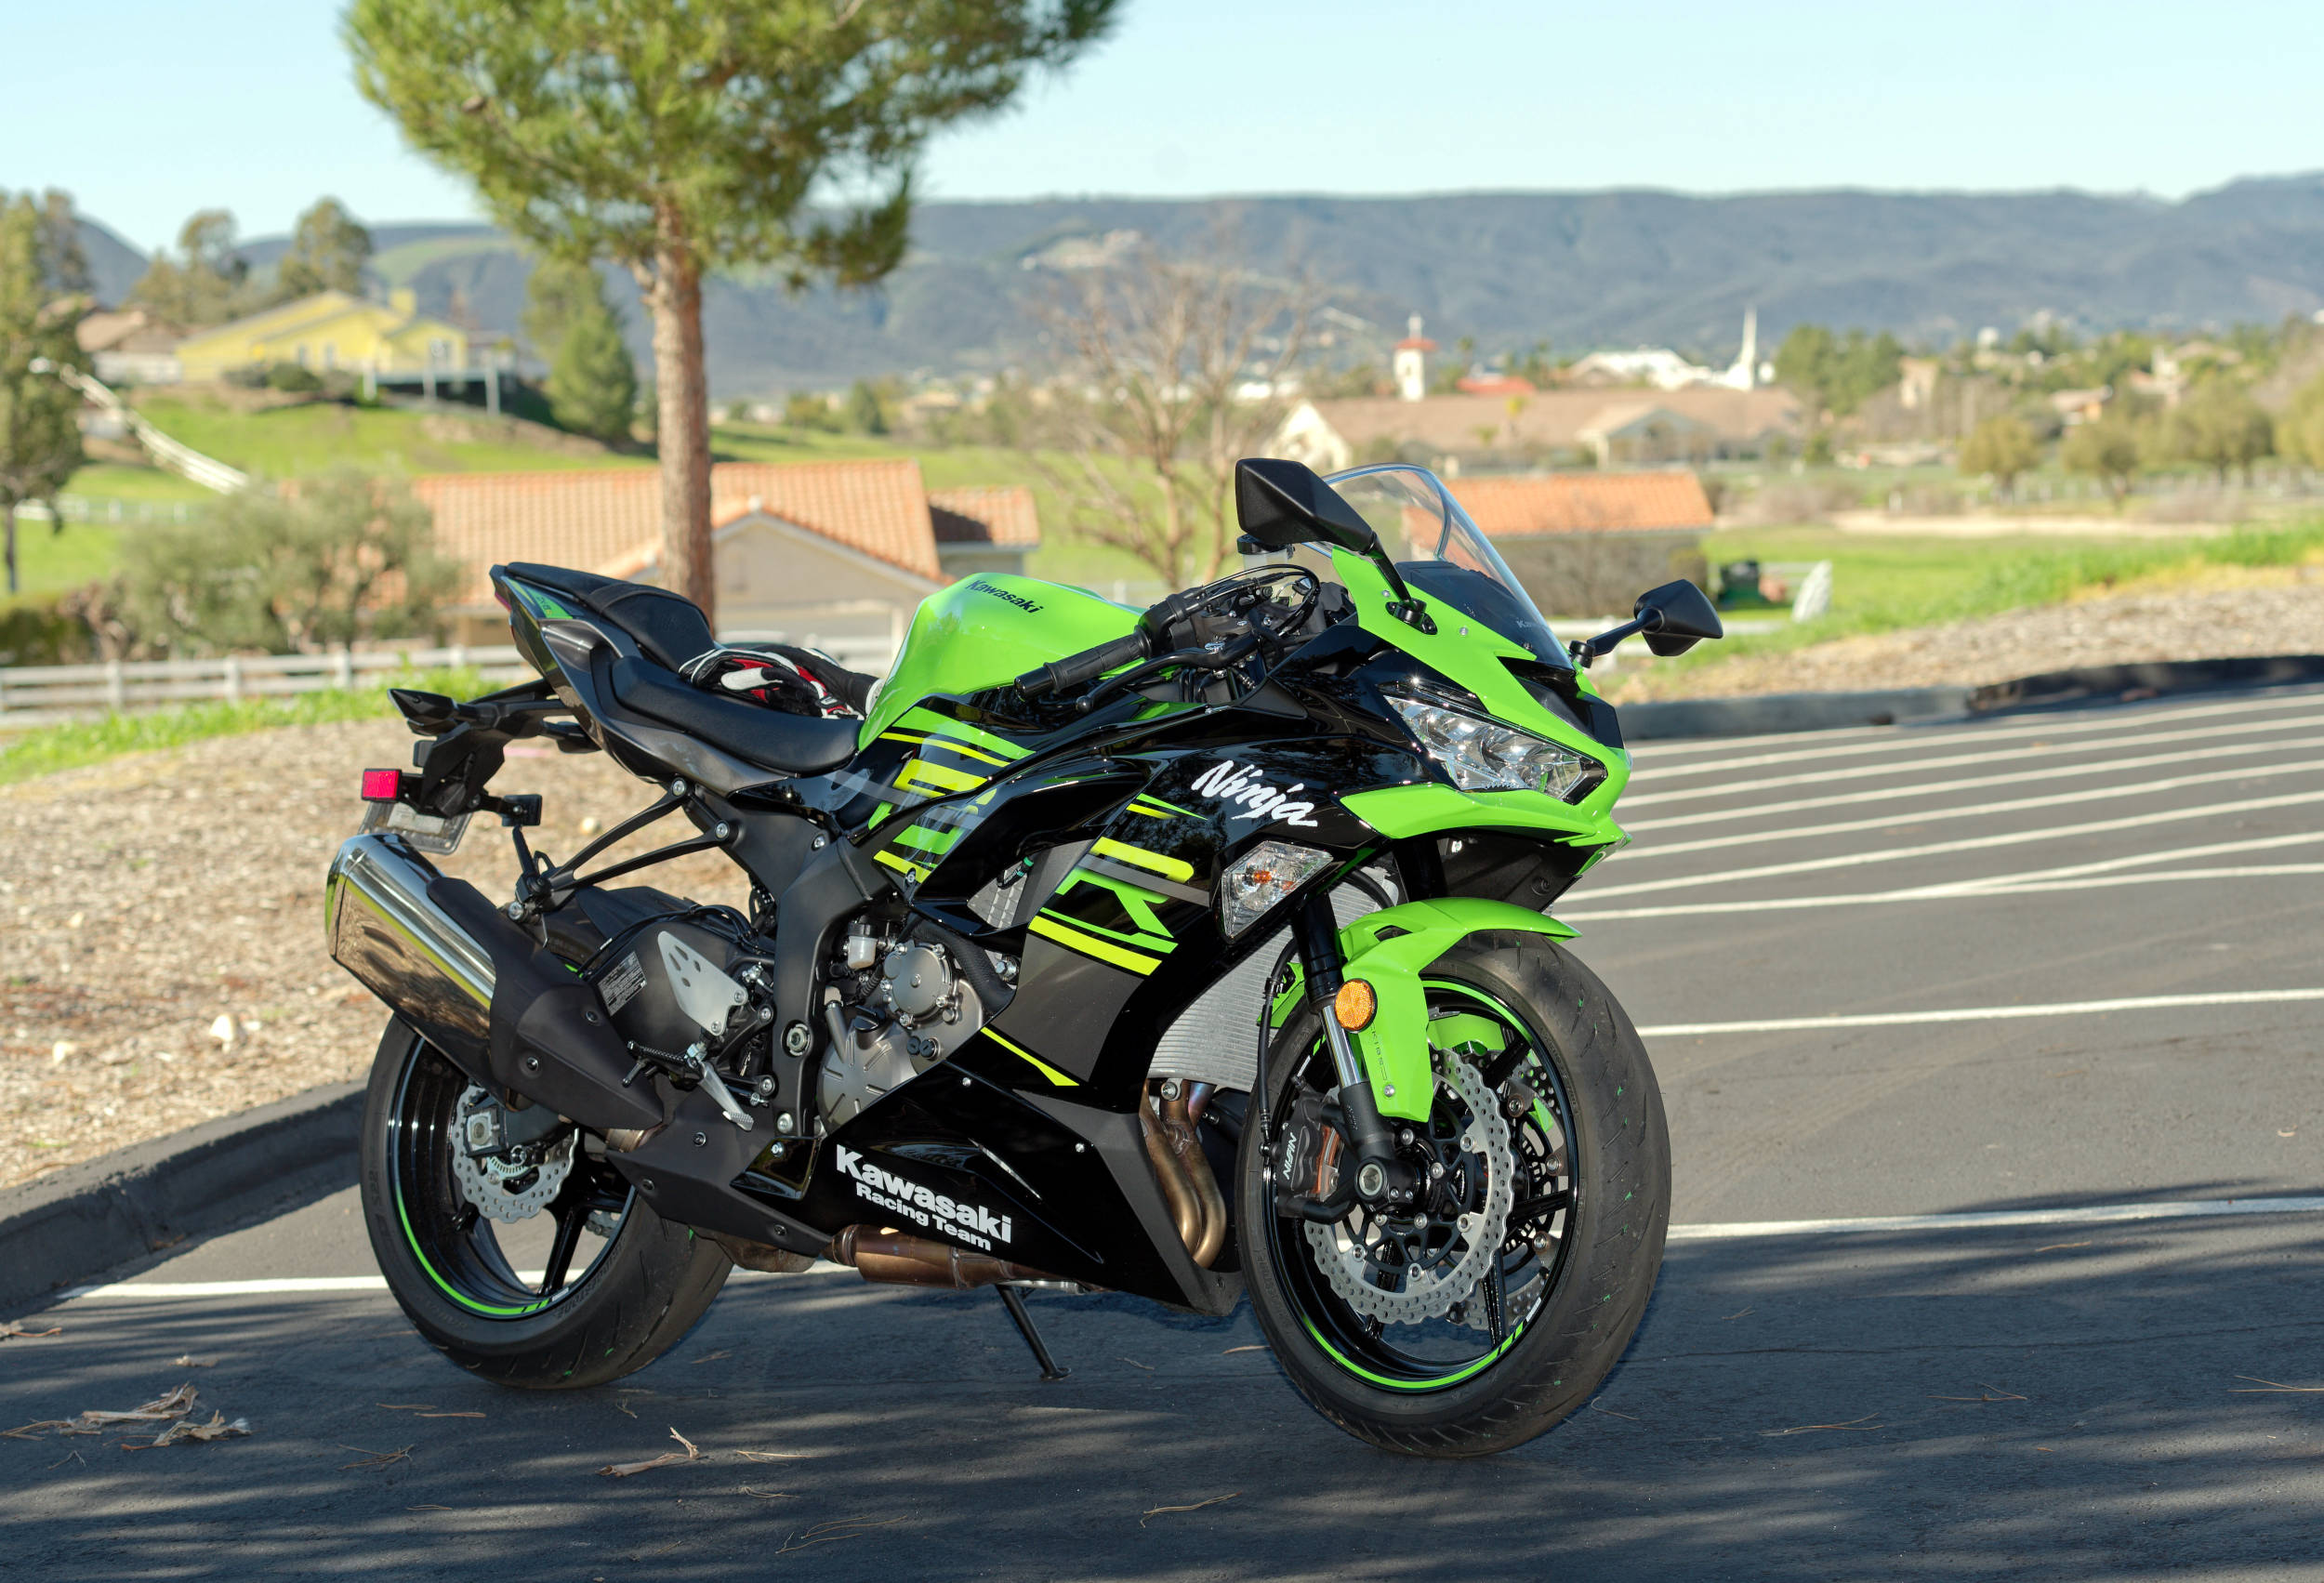 2019 Kawasaki Ninja Zx 6r Md Ride Review Motorcycledailycom